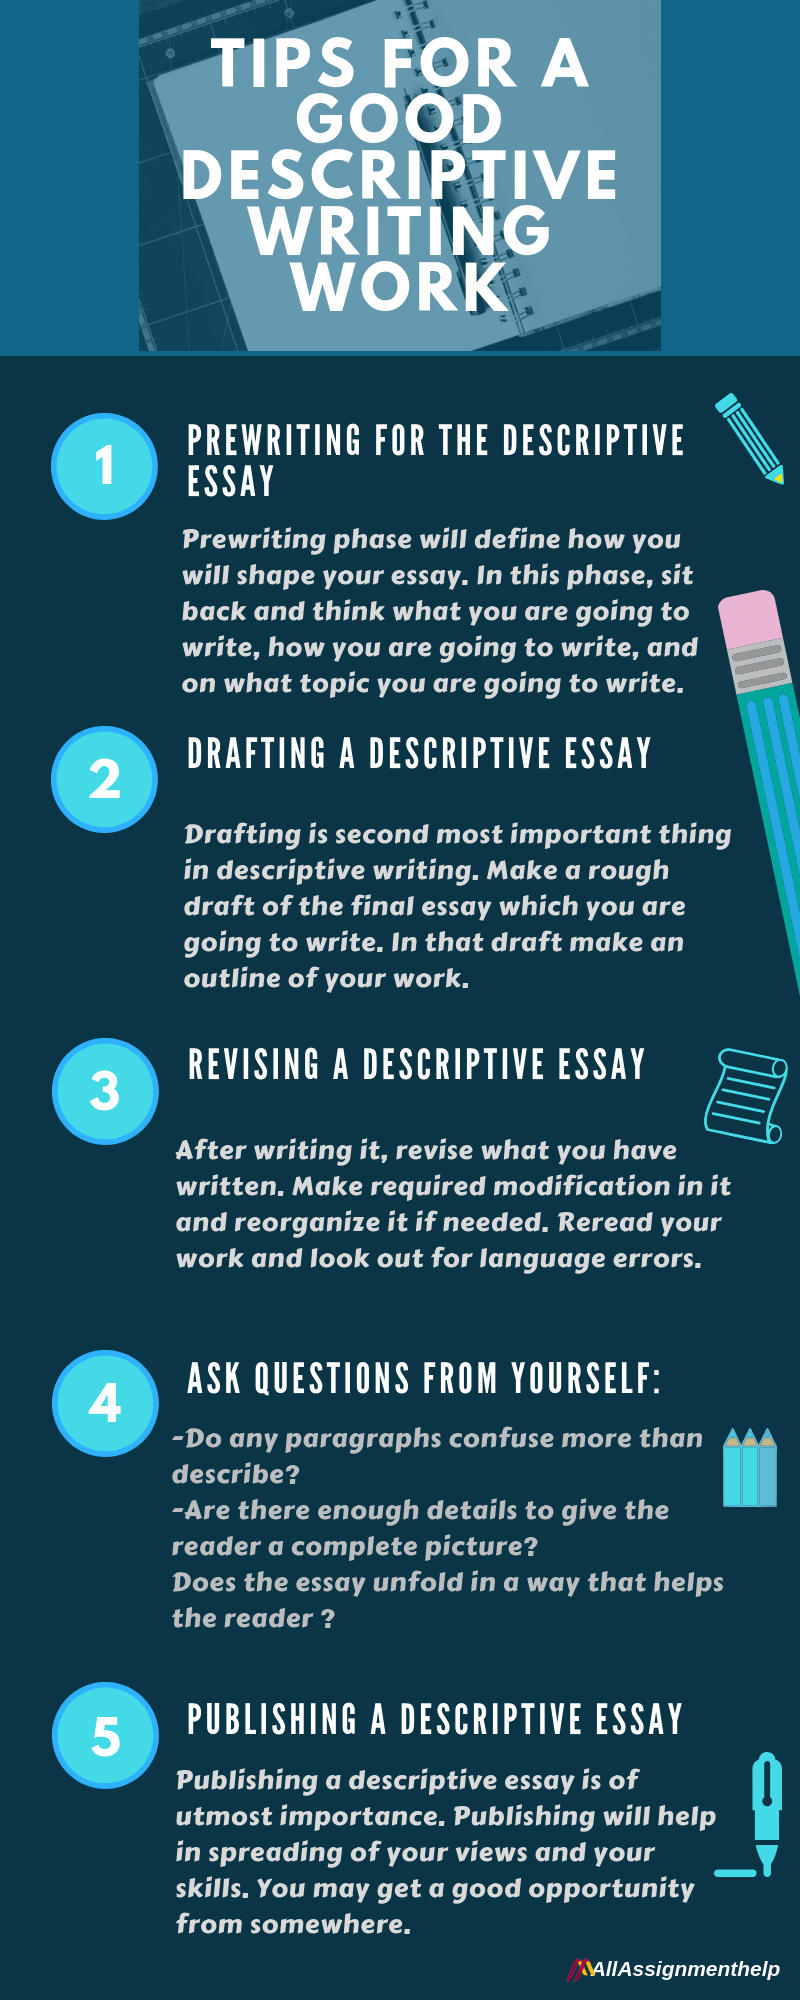 What should a descriptive writing include